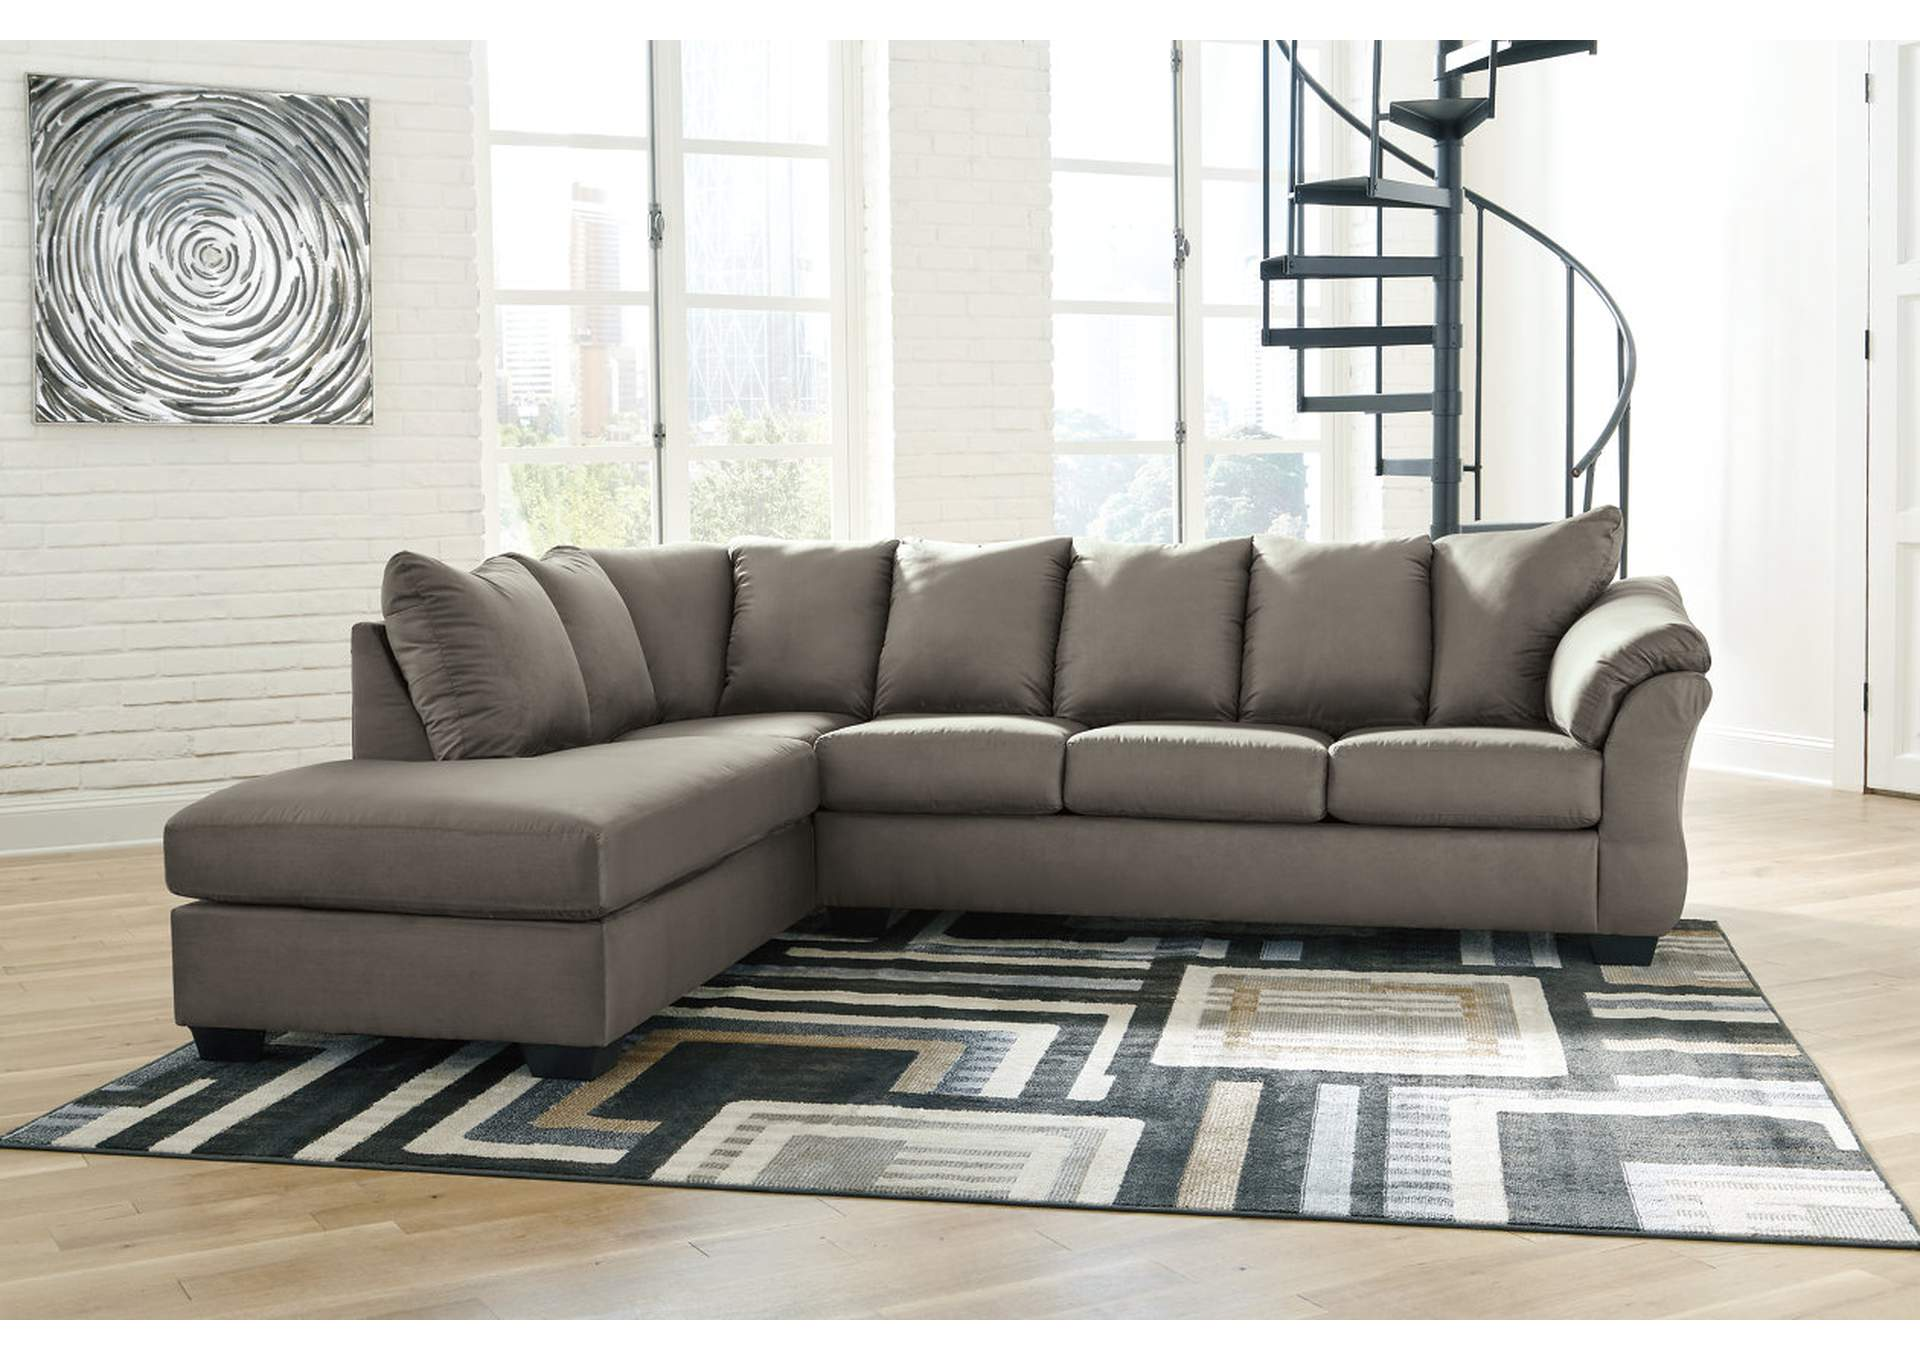 Darcy Cobblestone LAF Chaise Sectional,Signature Design By Ashley